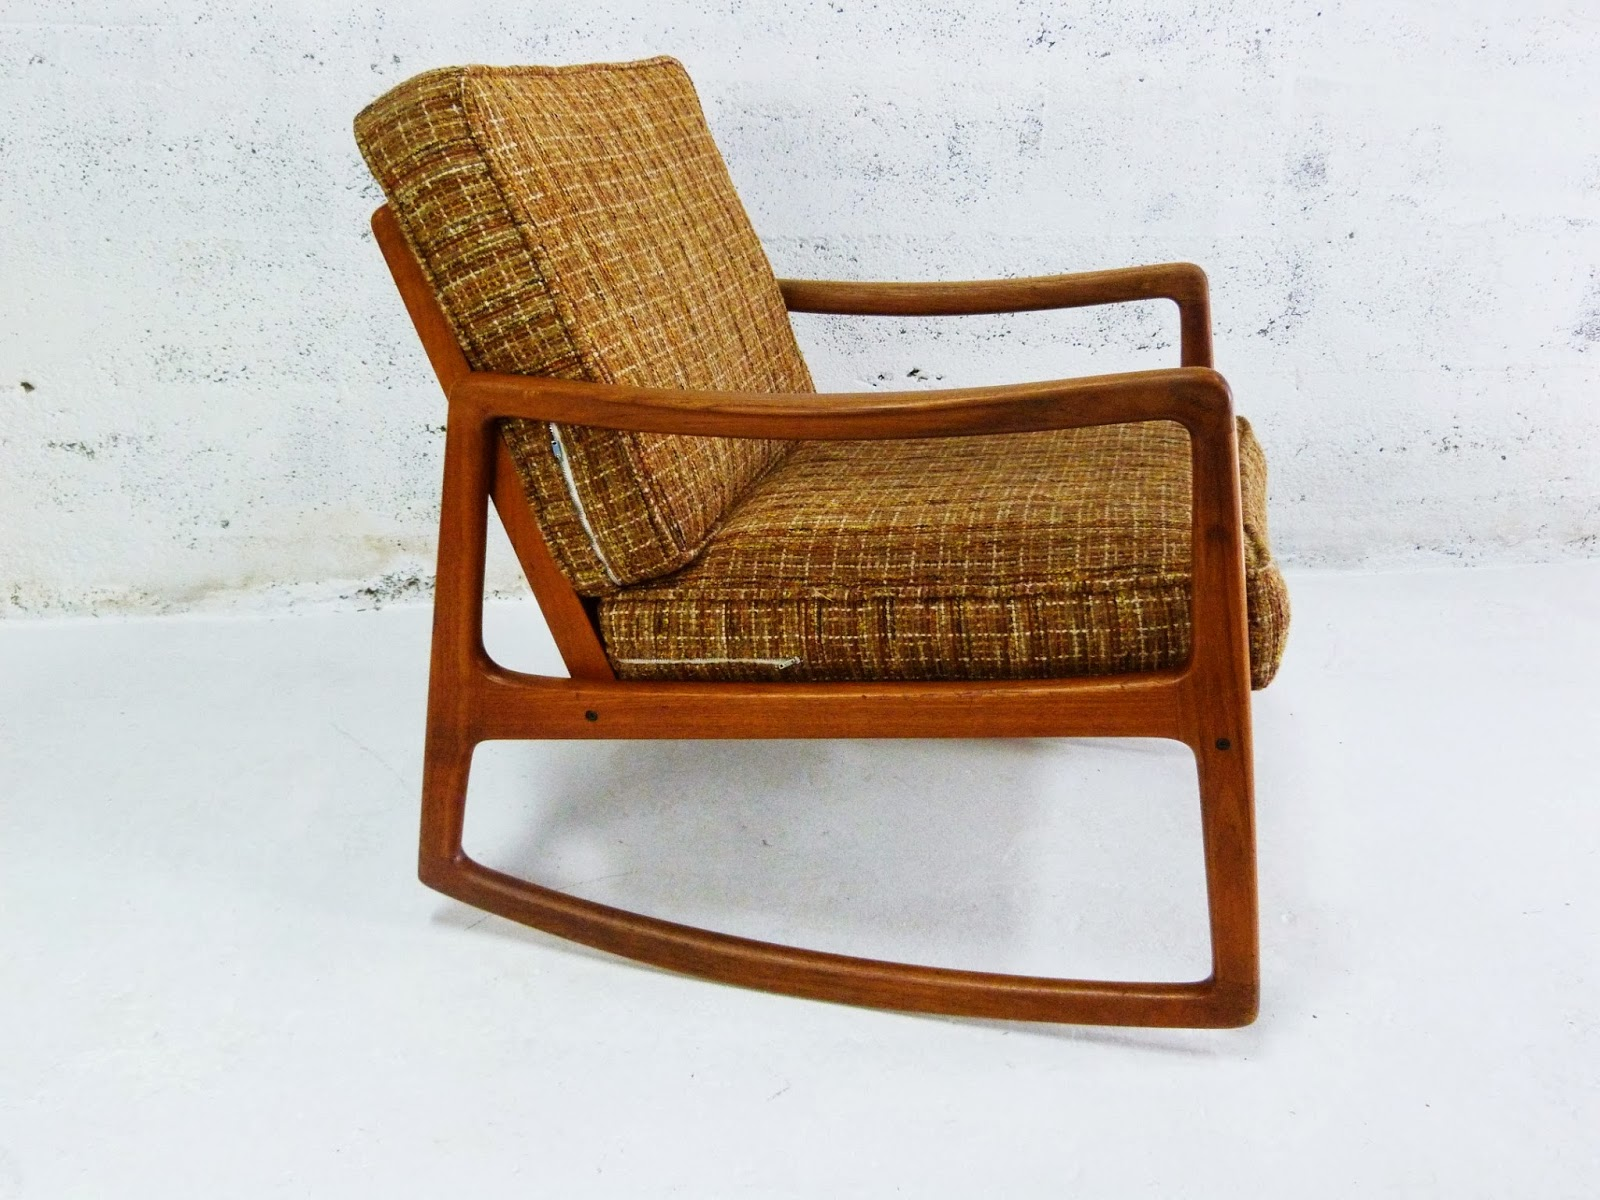 Price reduced sturdy wooden vintage rocking chair made in yugoslavia - A